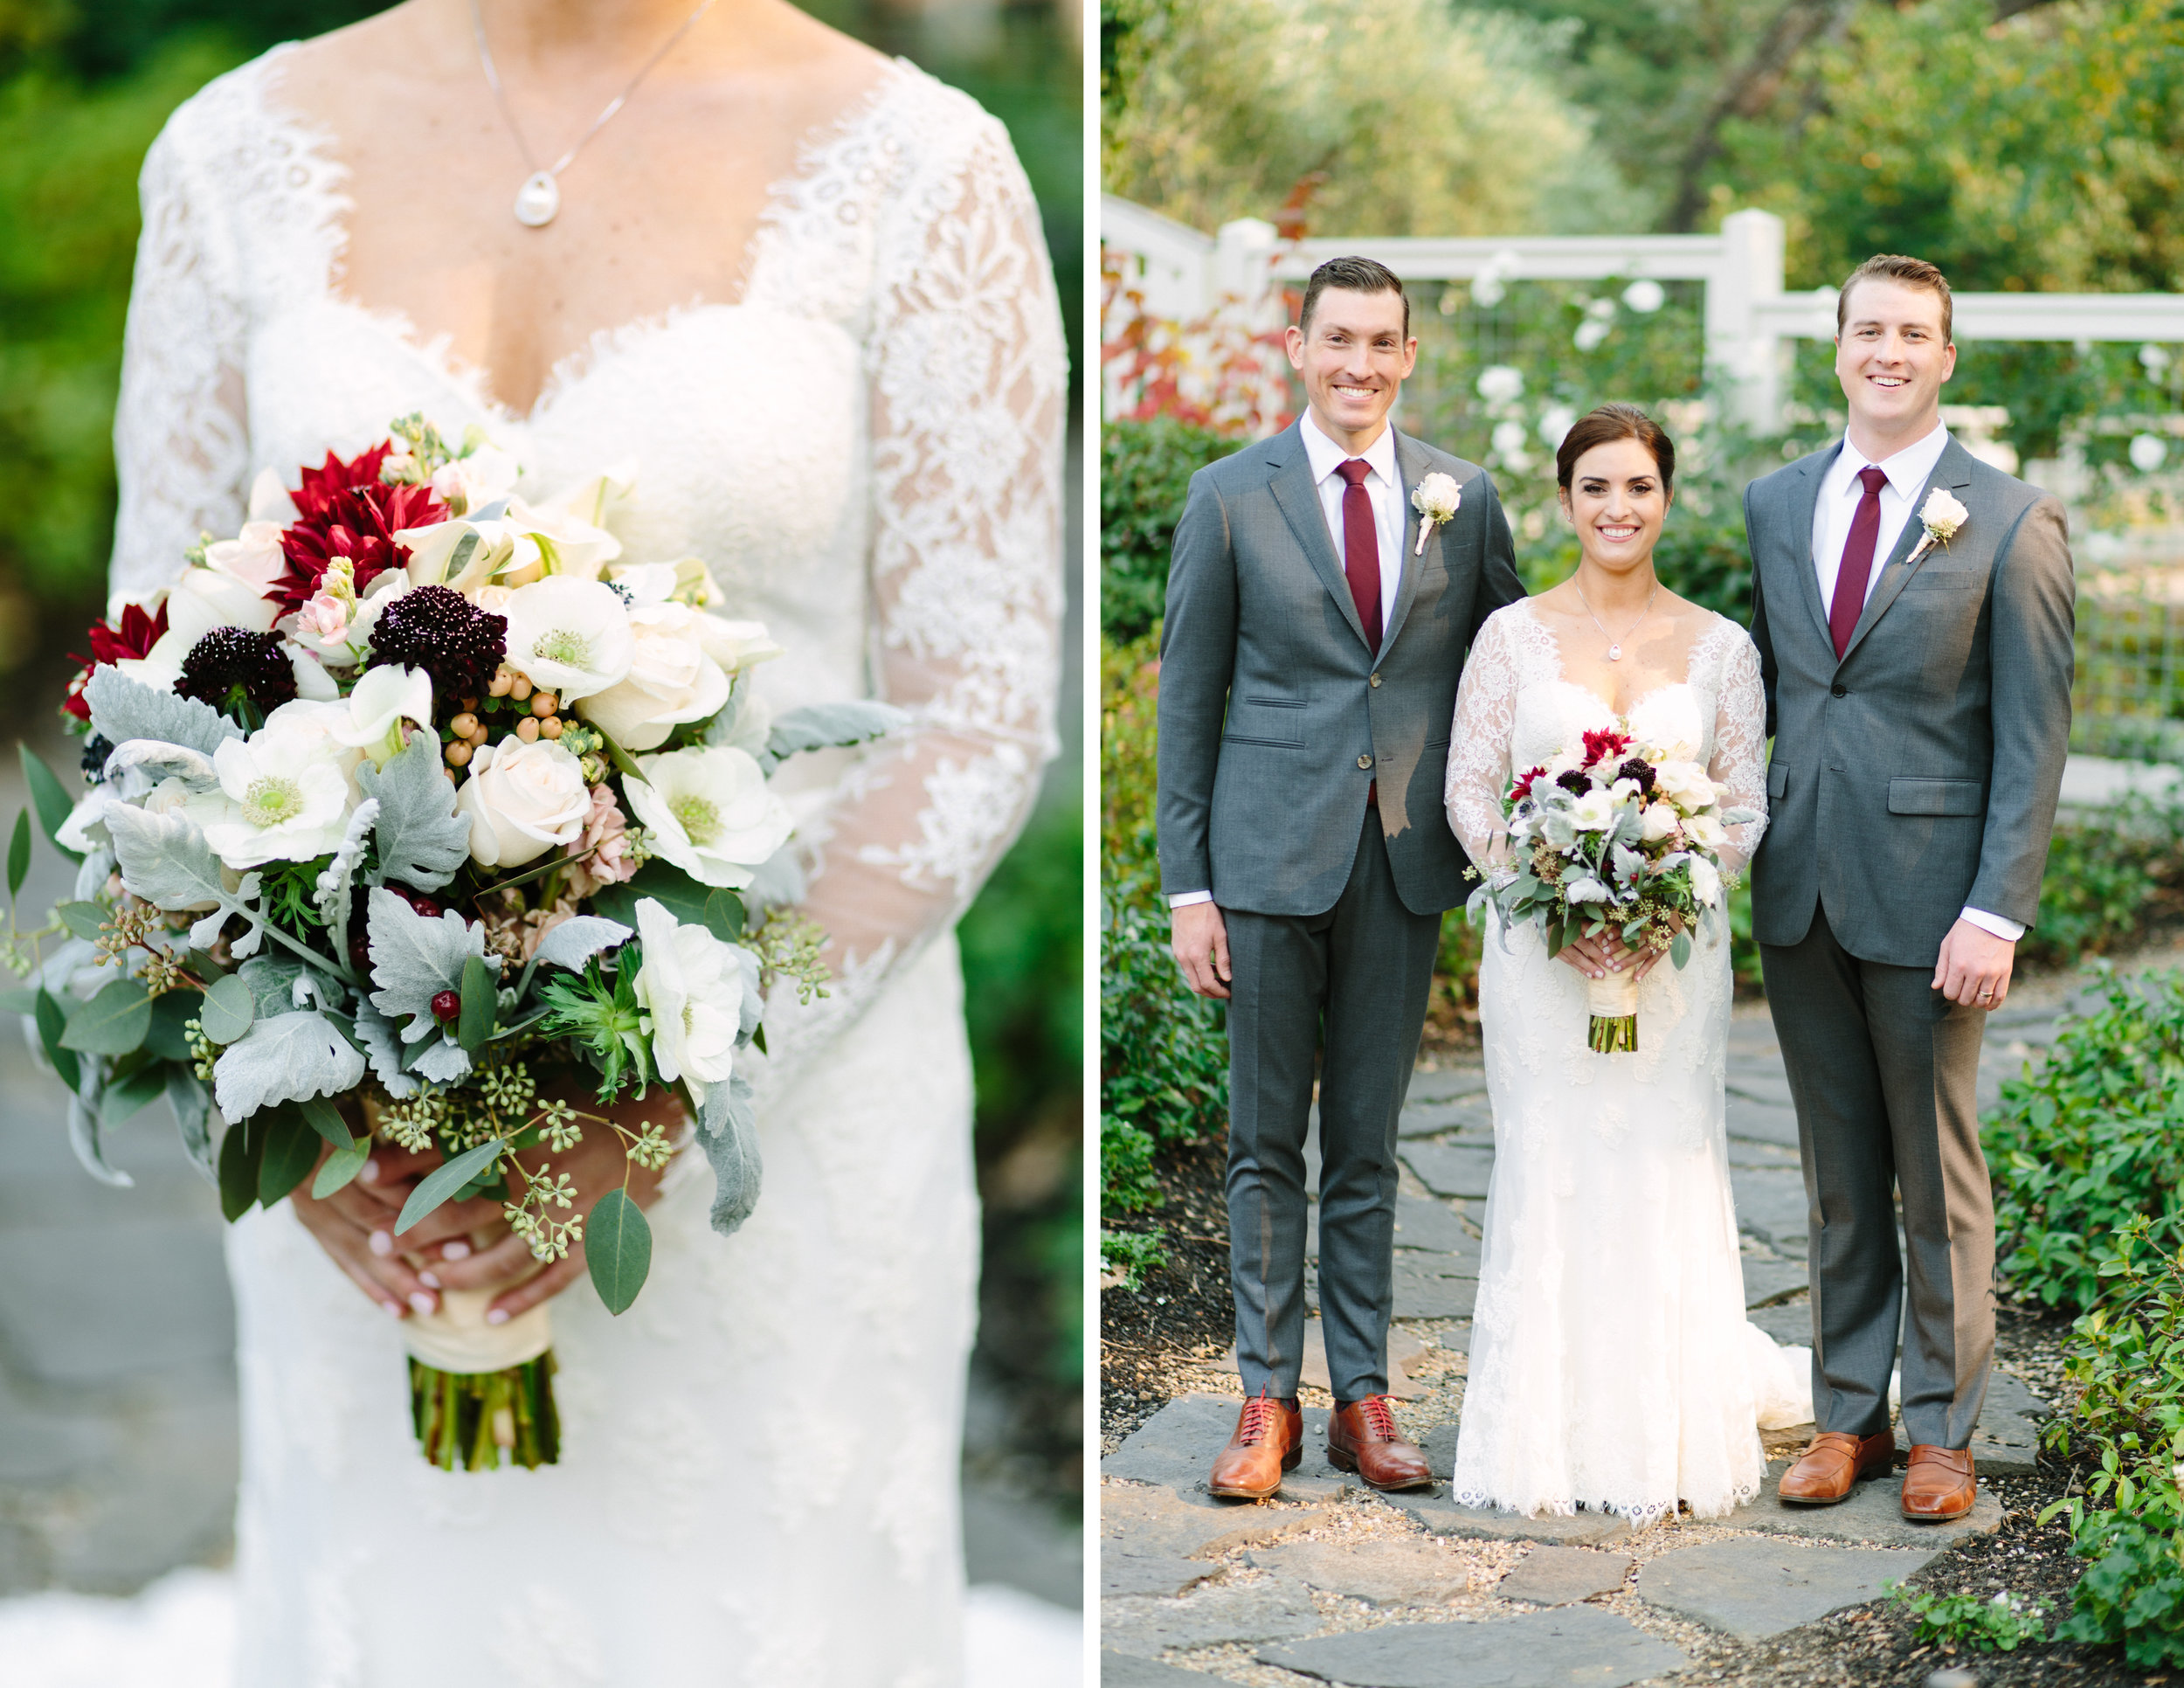 sonoma autumn wedding 4.jpg